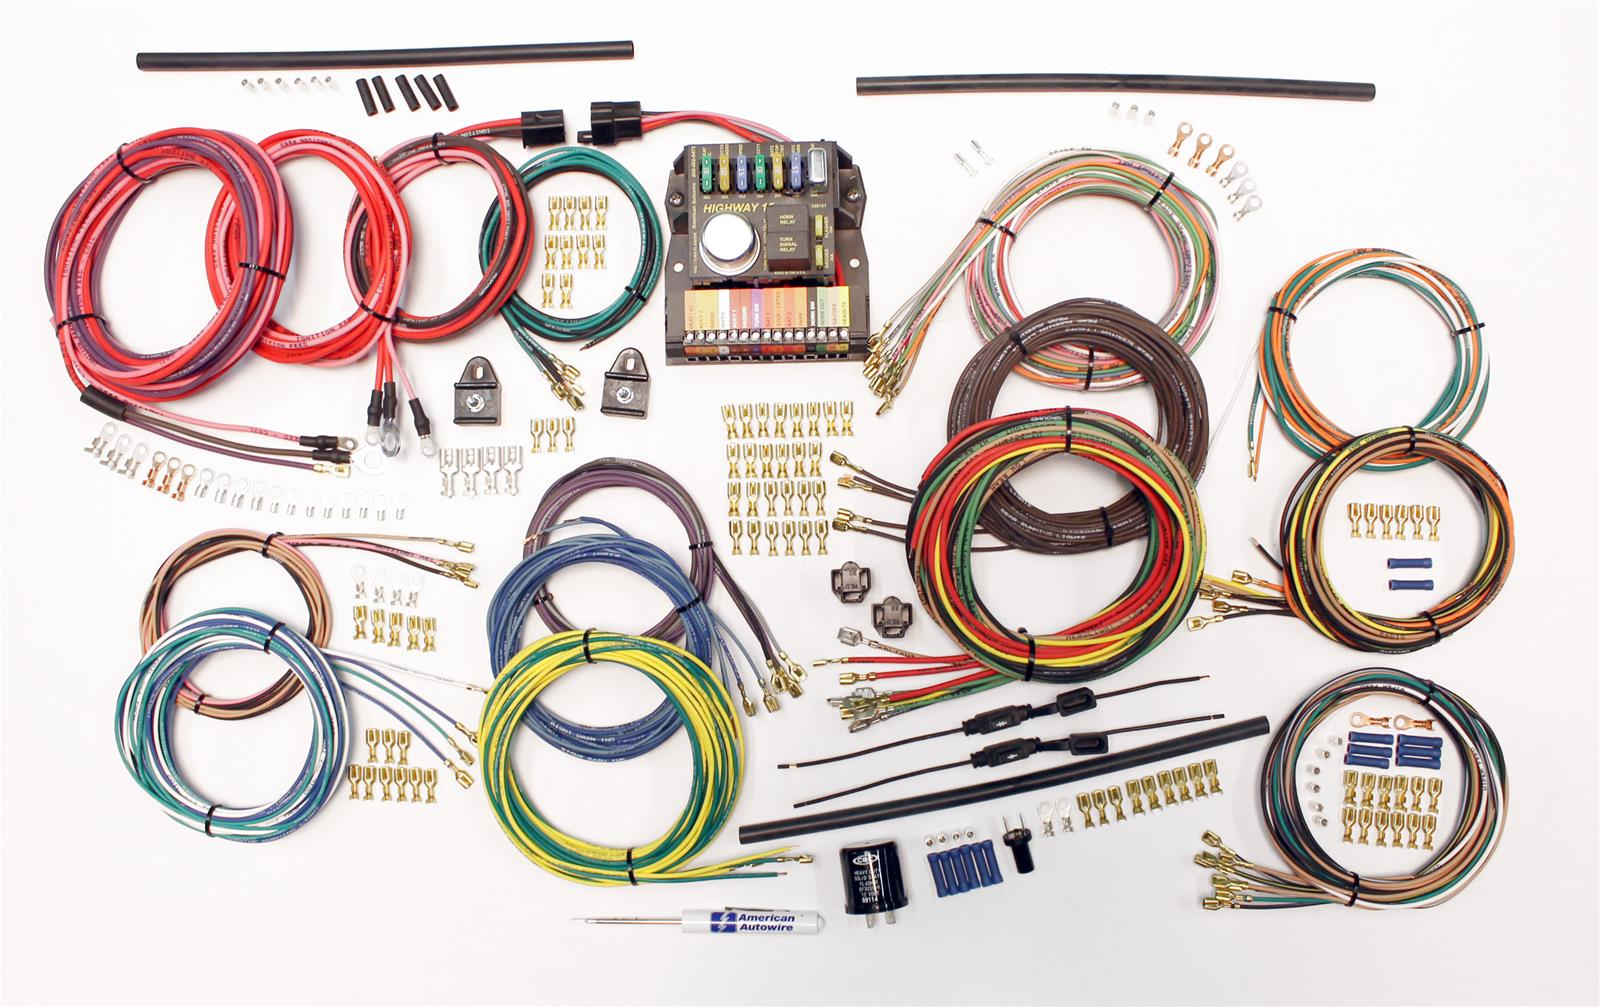 american autowire classic update series wiring harness kits 510419 rh summitracing com 1967 vw bug wiring harness wiring harness for 1956 vw bug